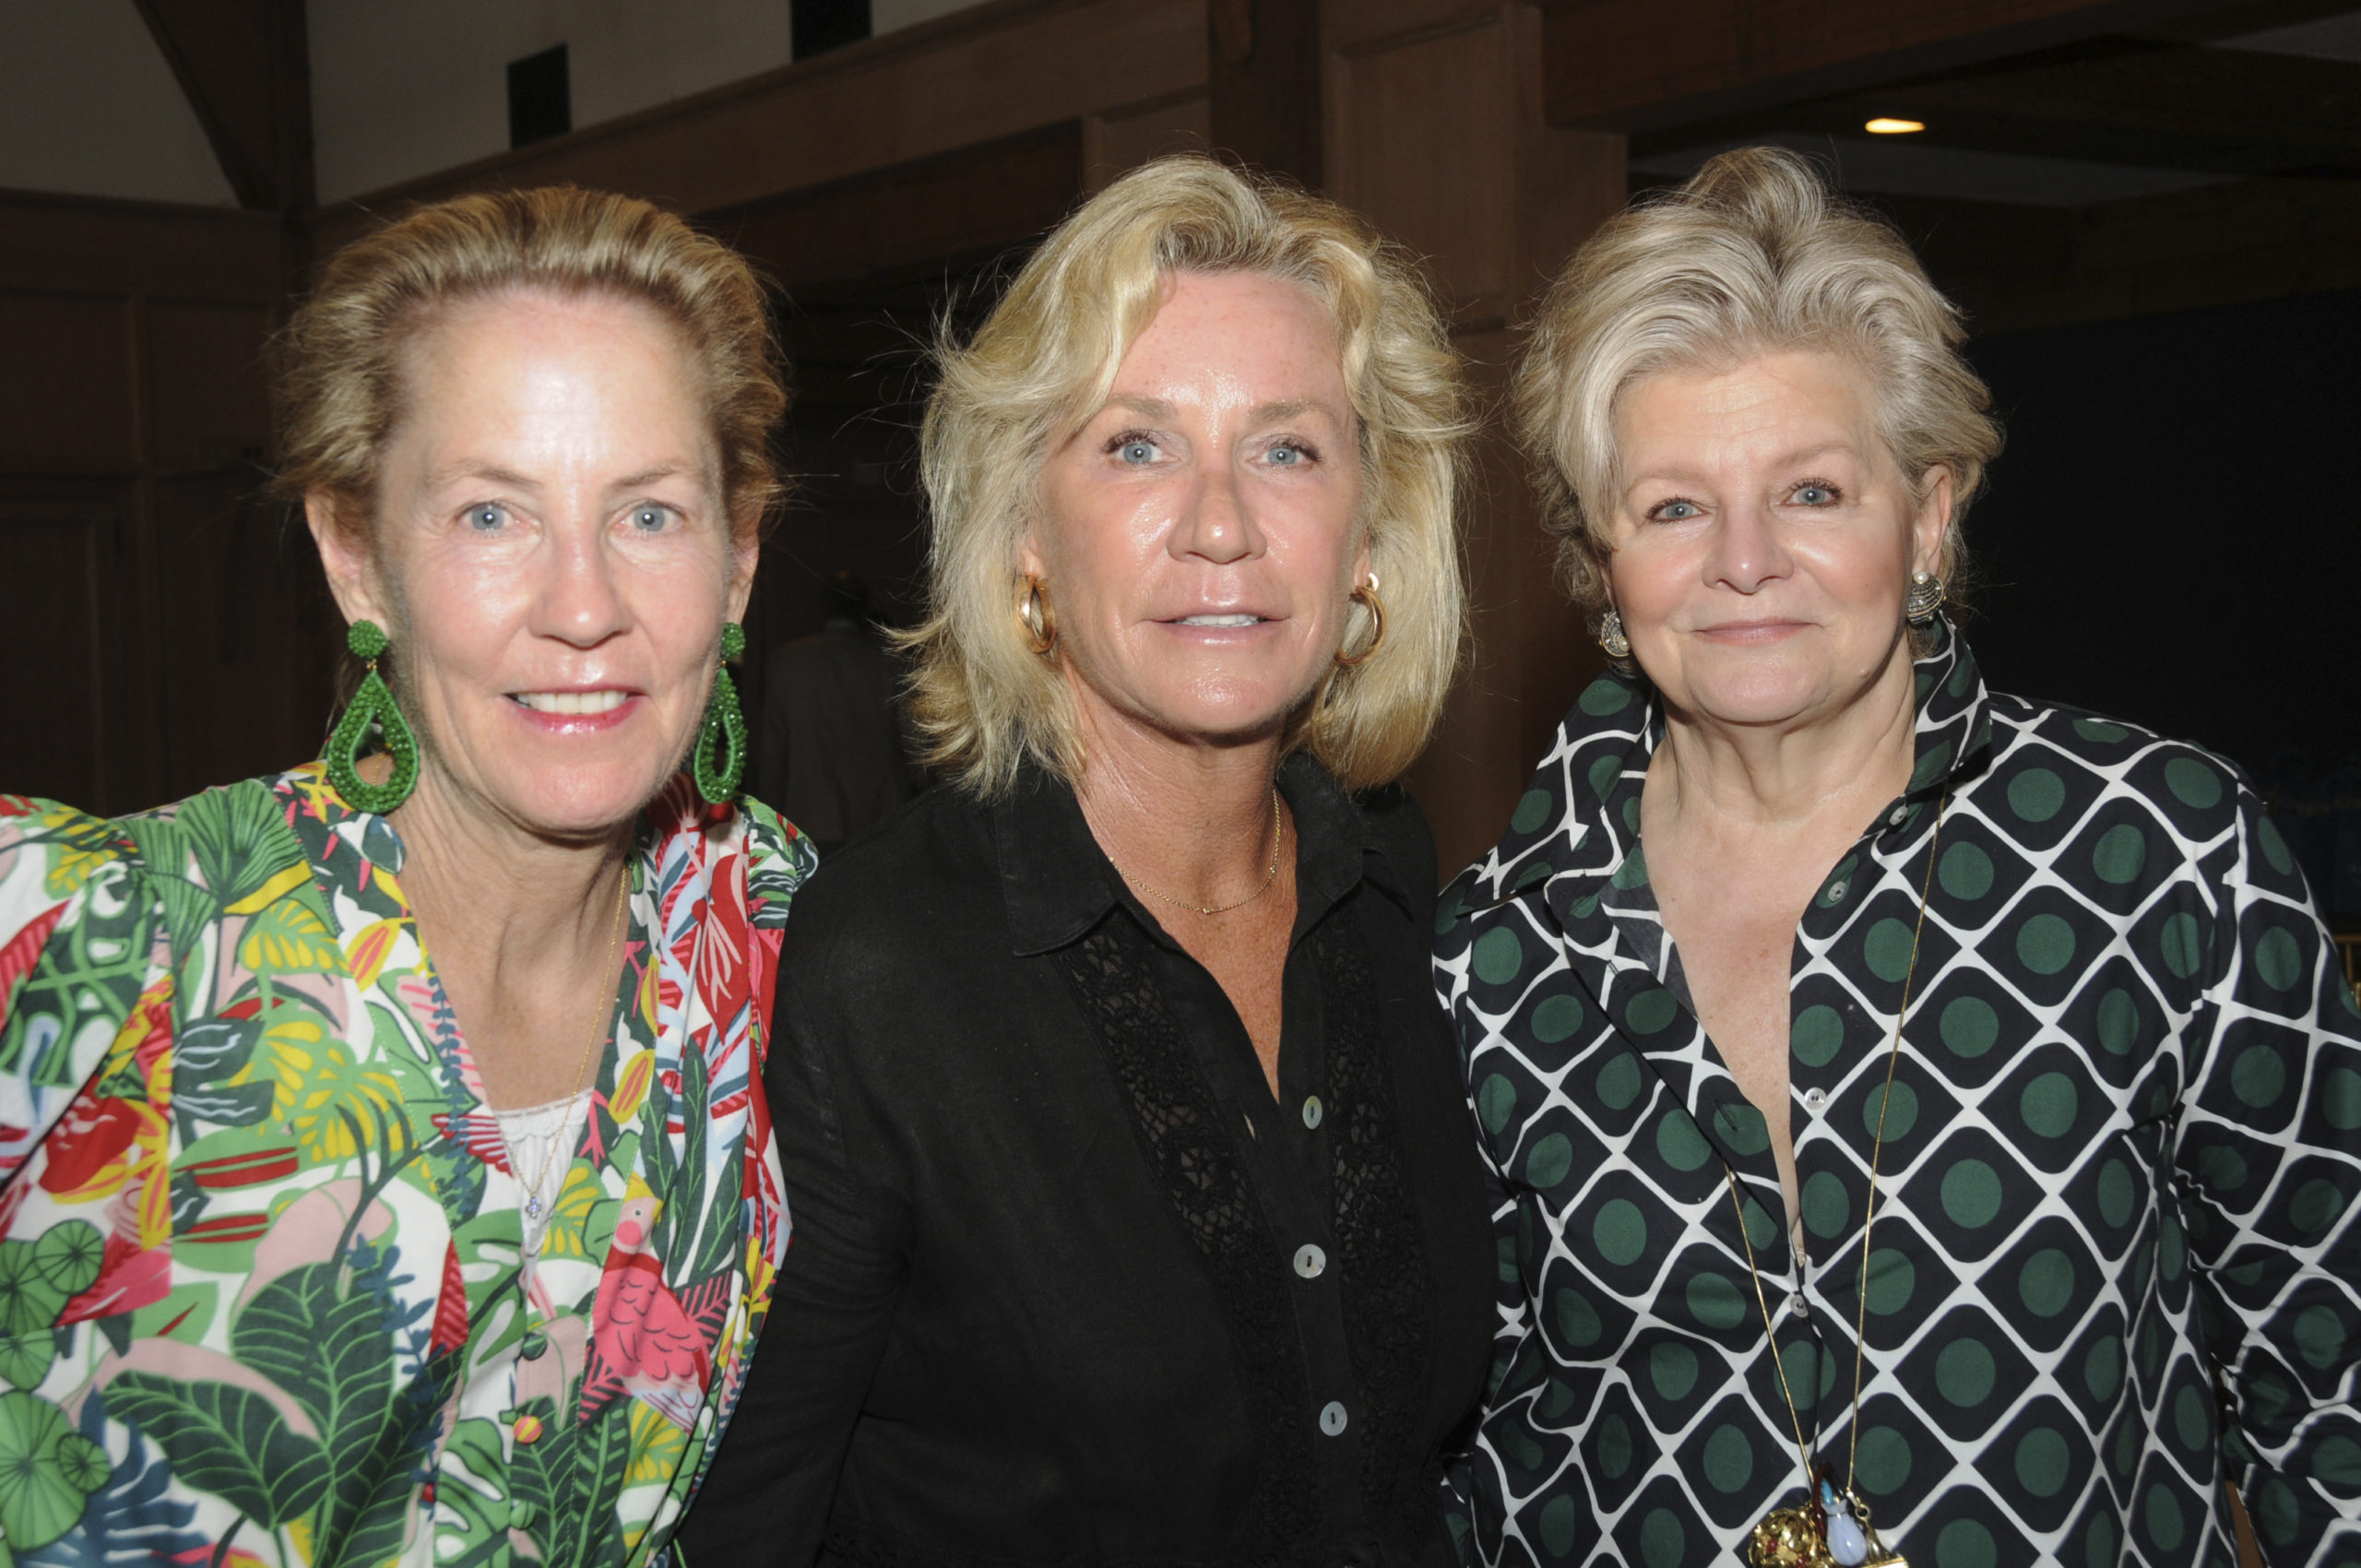 Christine Kennedy, Hollis Forbes and Charlotte Moss at the the East Hampton Historical Society's  annual Summer Lecture Luncheon, held at the Maidstone Club featuring guest speaker architect Perry Guillot.   RICHARD LEWIN